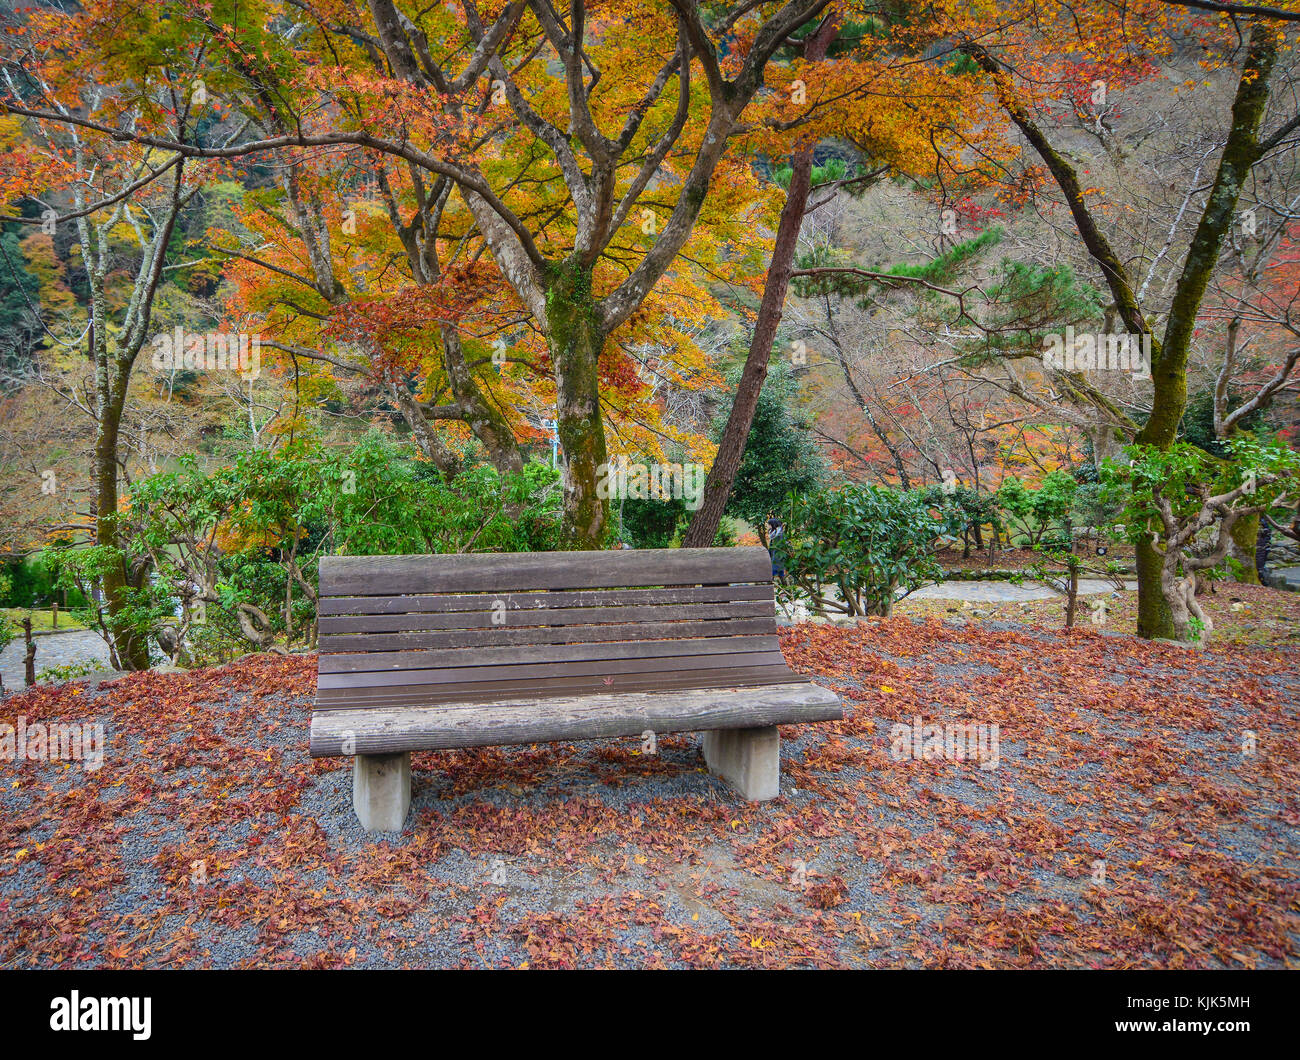 Groovy Bench Japanese Maple In Garden Stock Photos Bench Japanese Andrewgaddart Wooden Chair Designs For Living Room Andrewgaddartcom